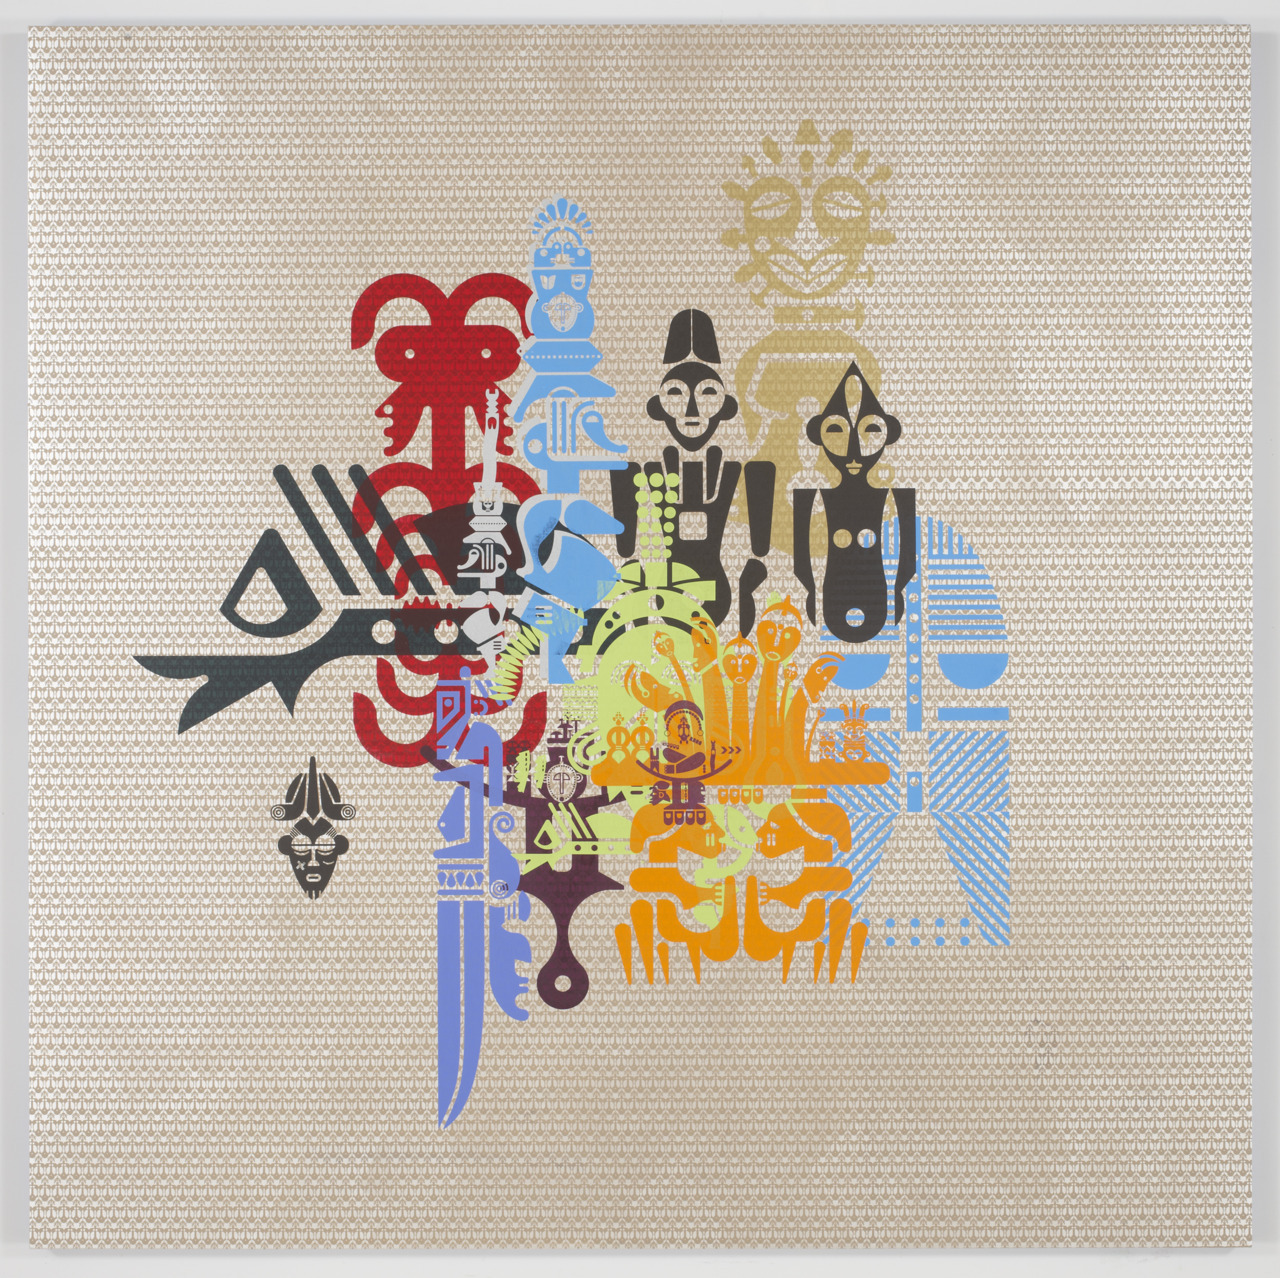 Ryan McGinness, Geometric Primitives Painting 1, 2012 // acrylic on canvas // 72 x 72 inches // Published by Pace Editions, Inc.